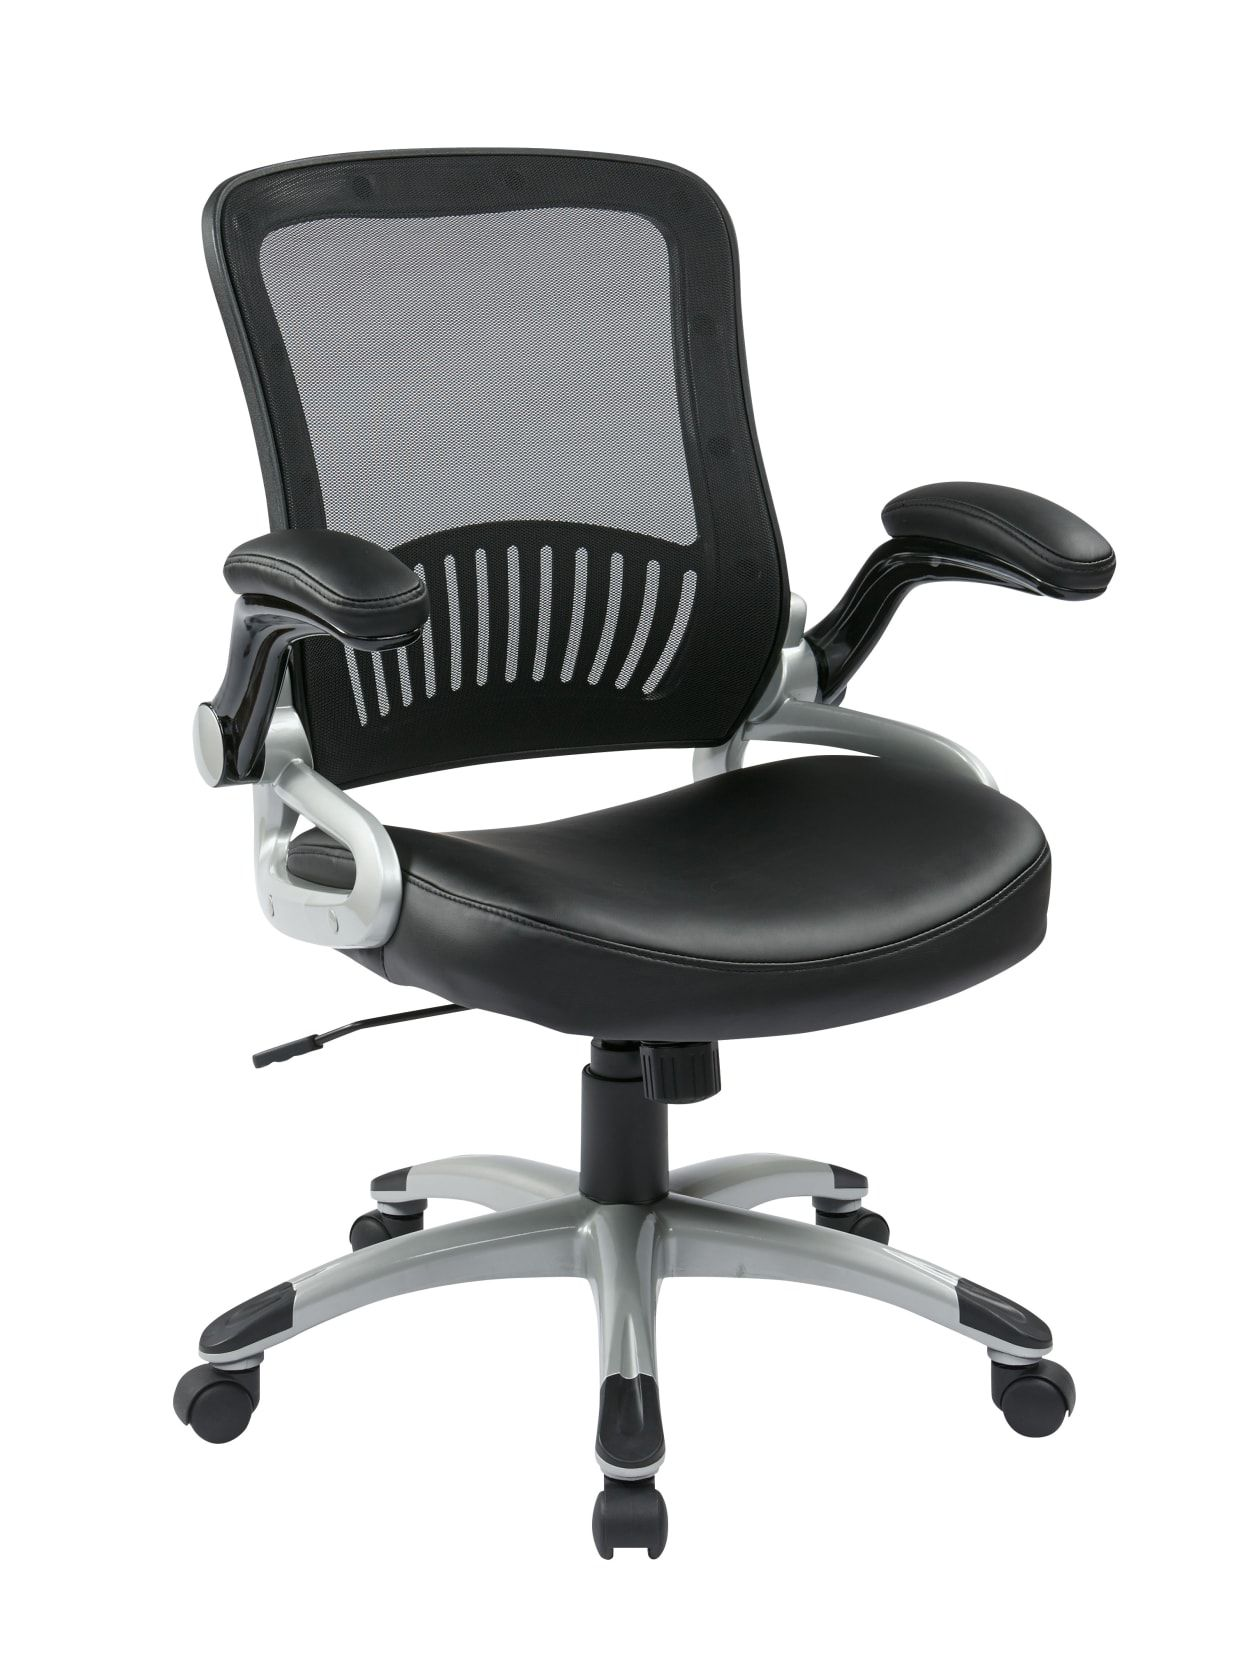 Office Star Work Smart Chair Blacksilver Office Depot Mesh Task Chair Leather Seat Black Office Chair